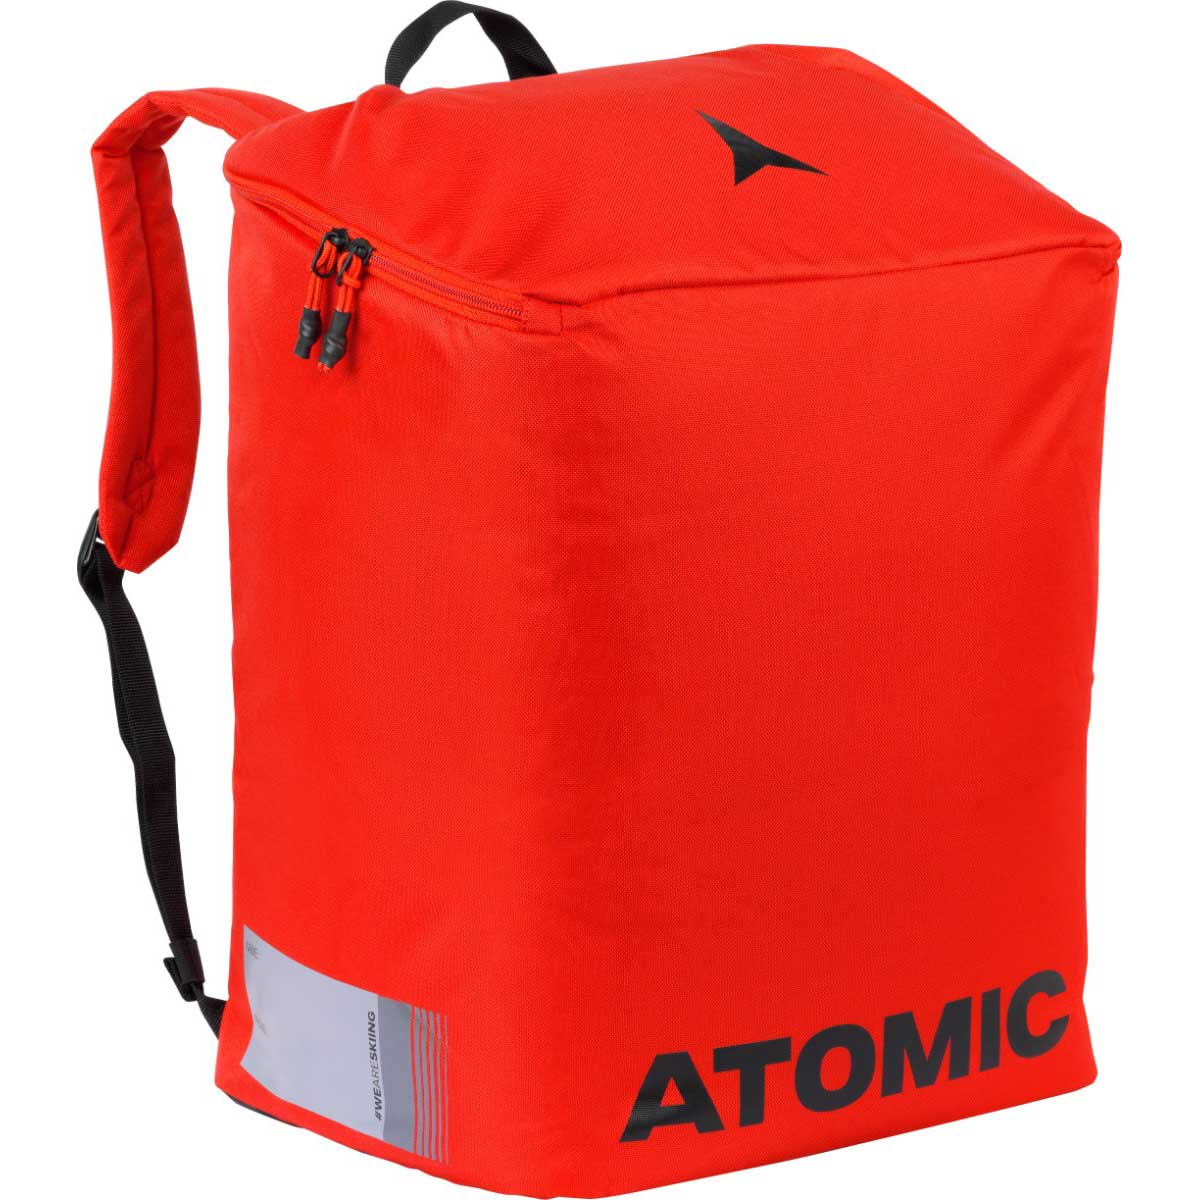 Atomic Boot and Helmet Pack in bright red and black